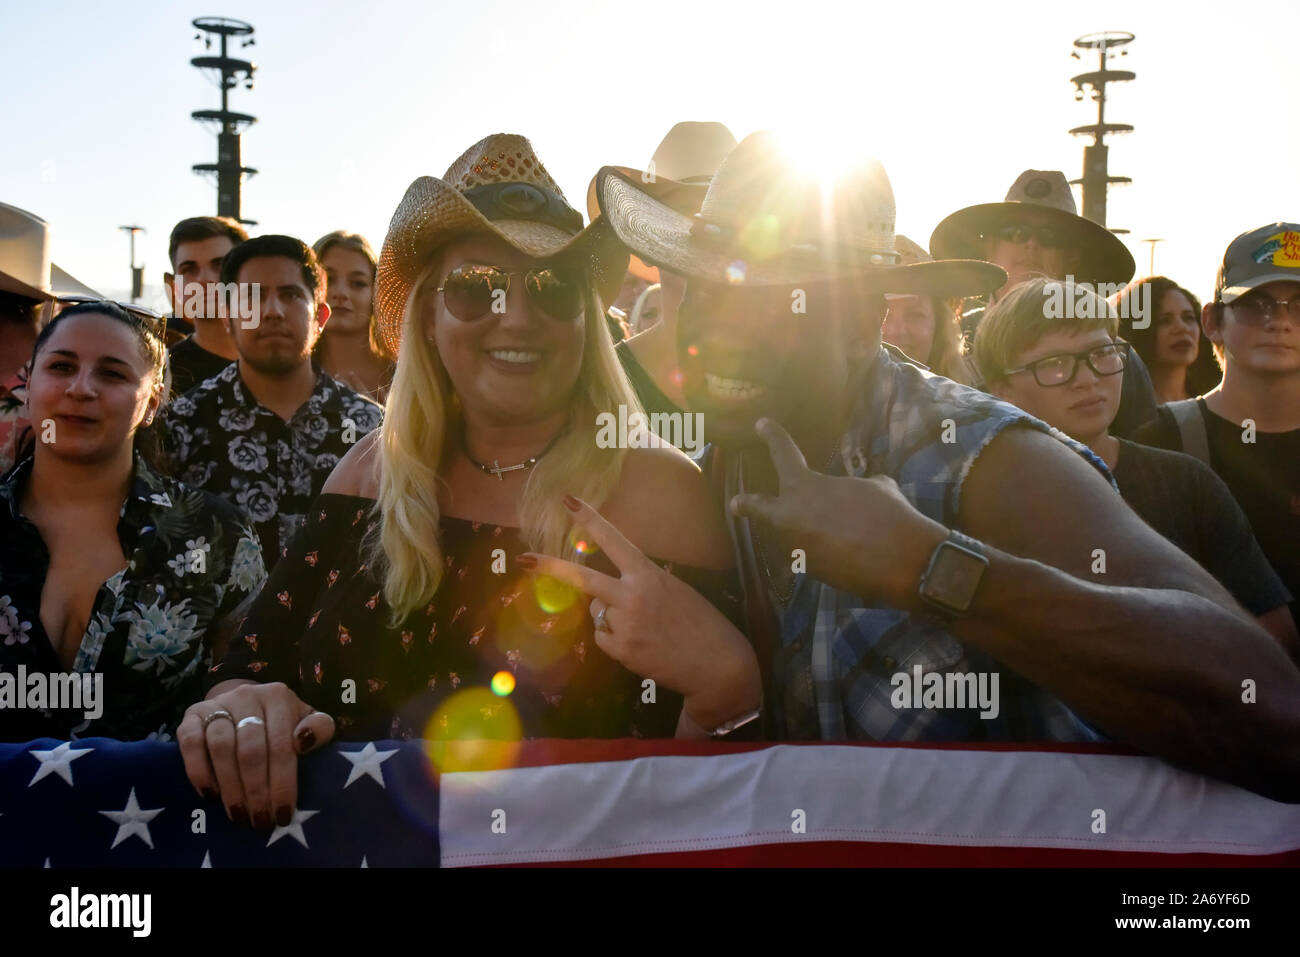 Crowd scene at the Stagecoach Country Music Festival in Indio, California Stock Photo